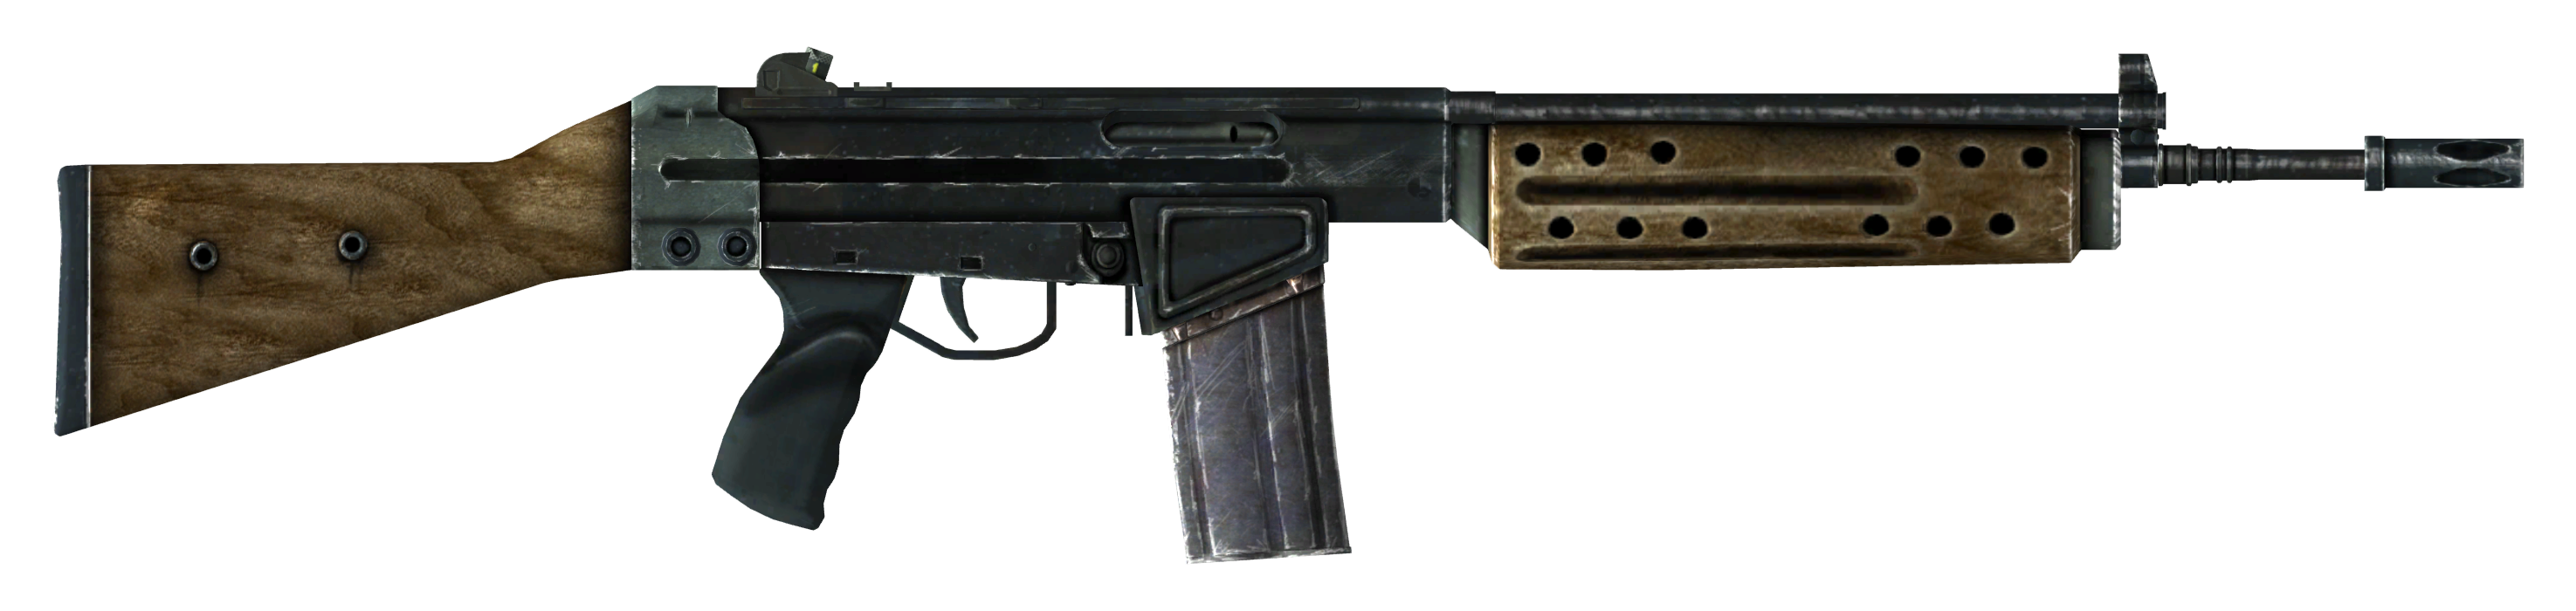 Assult rifle png. Image winterized r assault